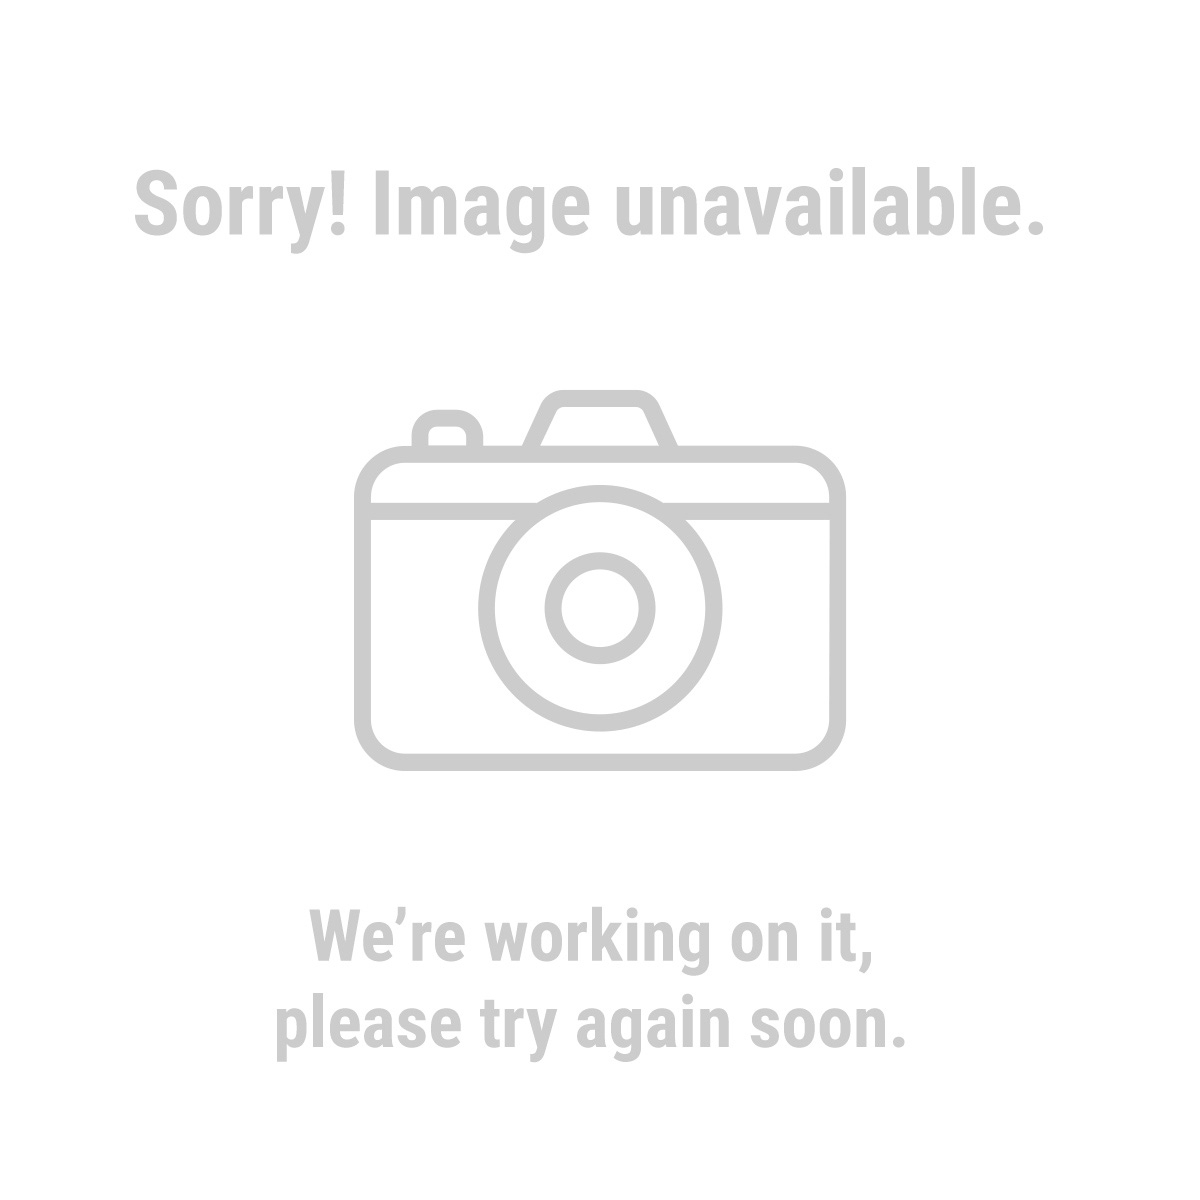 Western Safety 41987 Split Leather Palm Patch Work Gloves